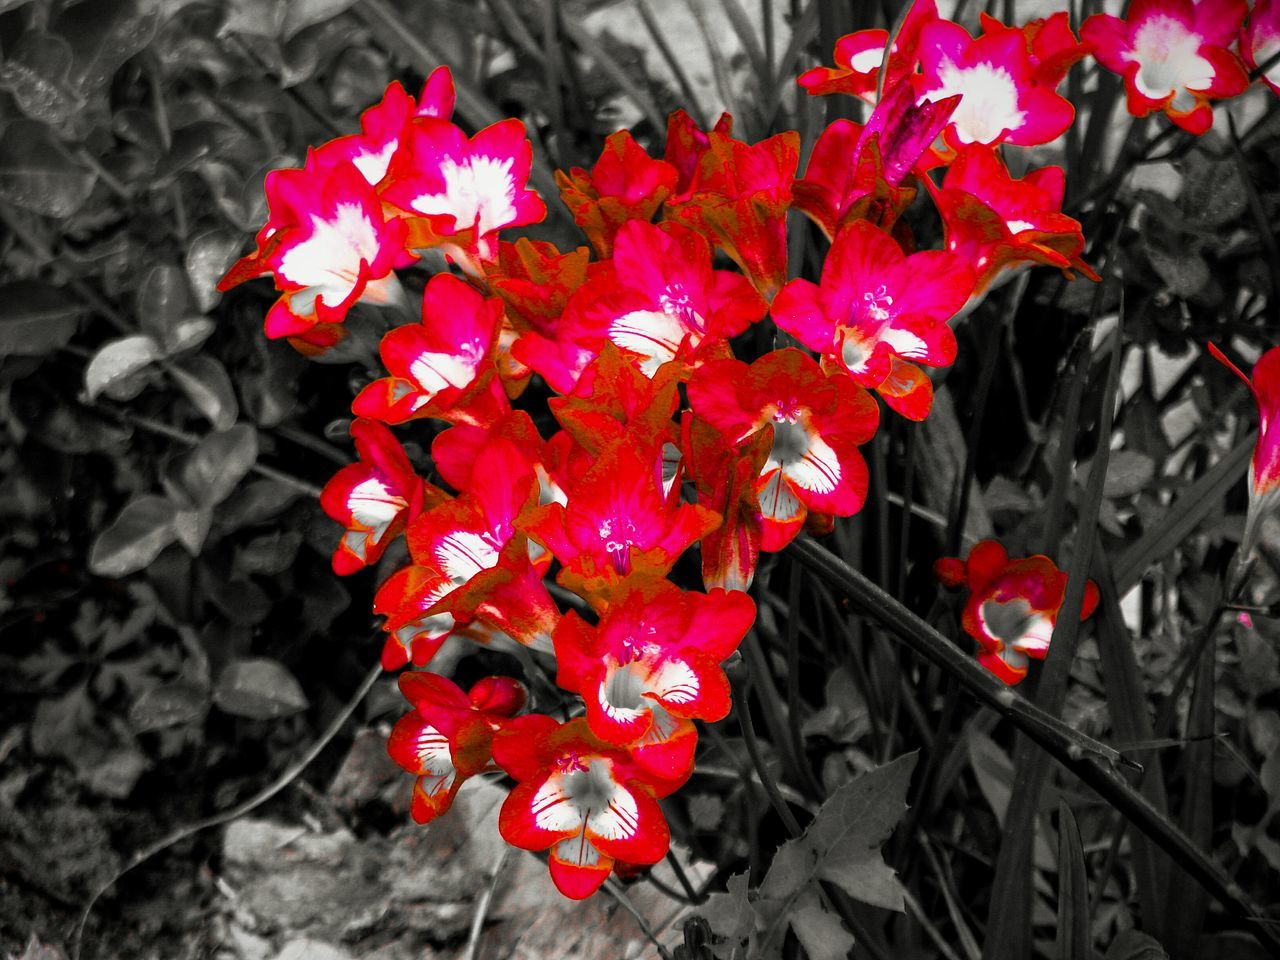 Flower Red Flowers Nature Beauty In Nature Fragility Growth Petal Freshness Plant Flower Head Branch Tree Blooming Red Flowers Wild Flowers Carmine Flowers_collection Flowers,Plants & Garden Black And Red